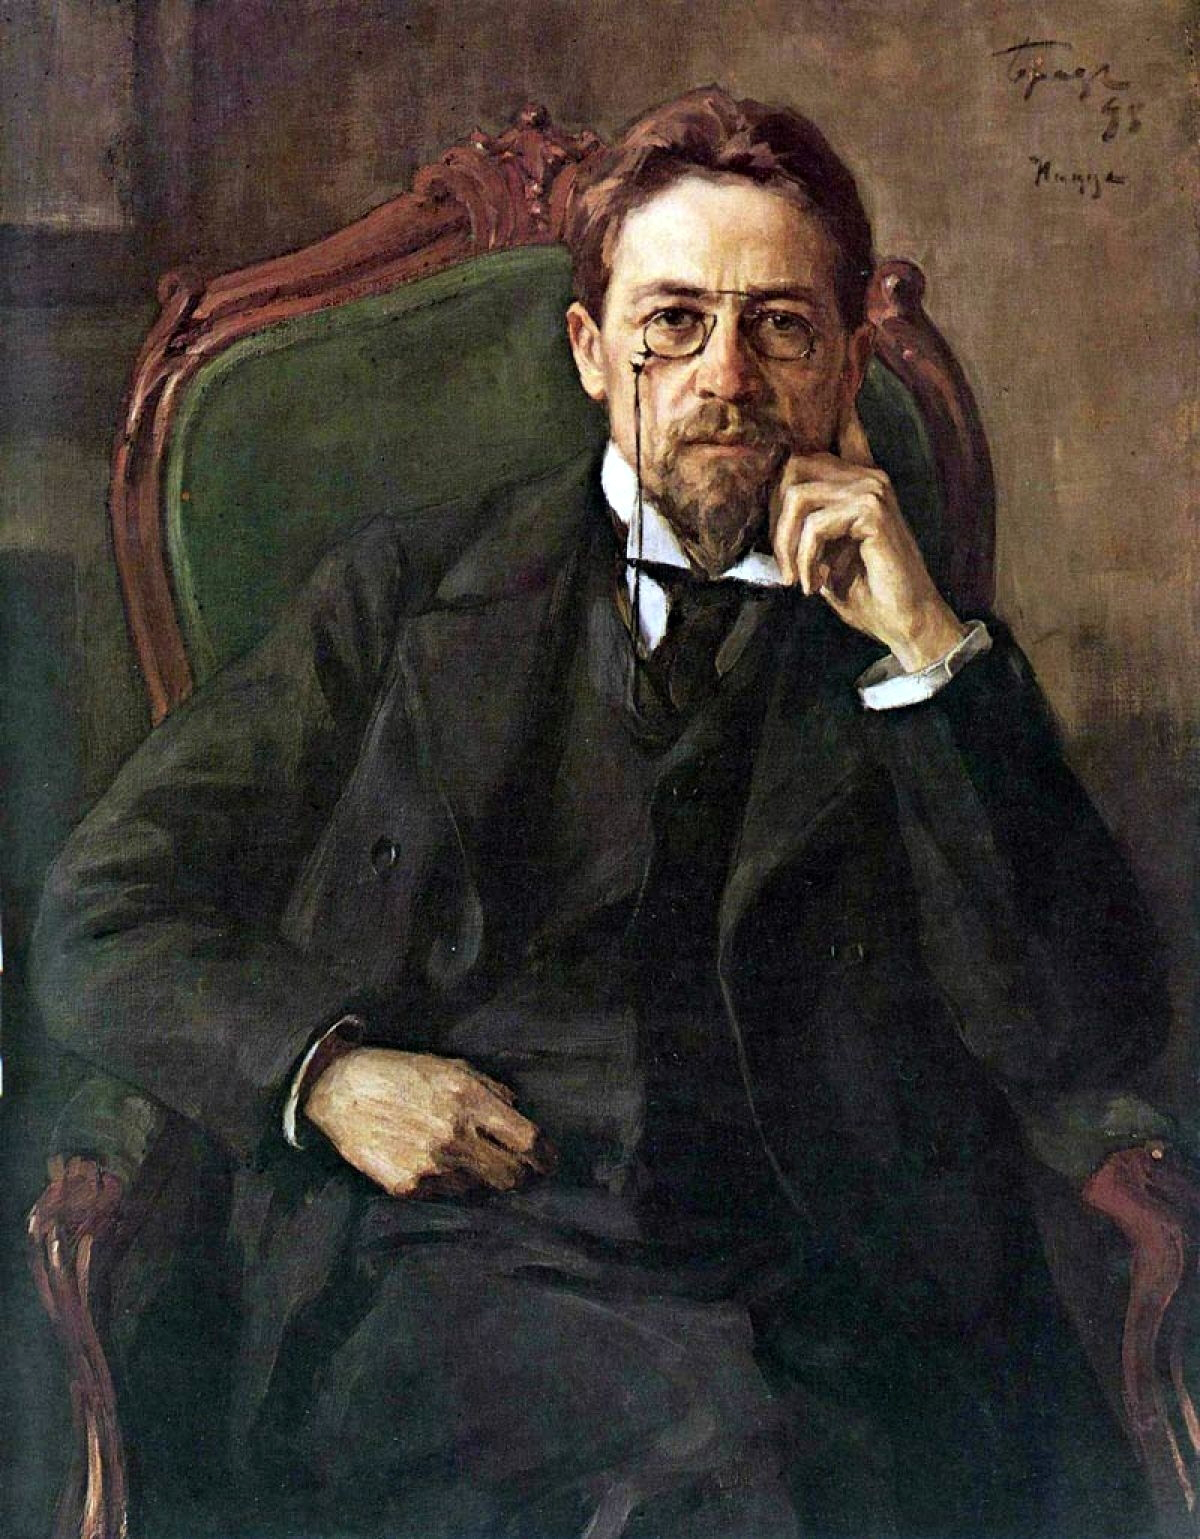 https://upload.wikimedia.org/wikipedia/commons/e/e9/Chekhov_1898_by_Osip_Braz.jpg